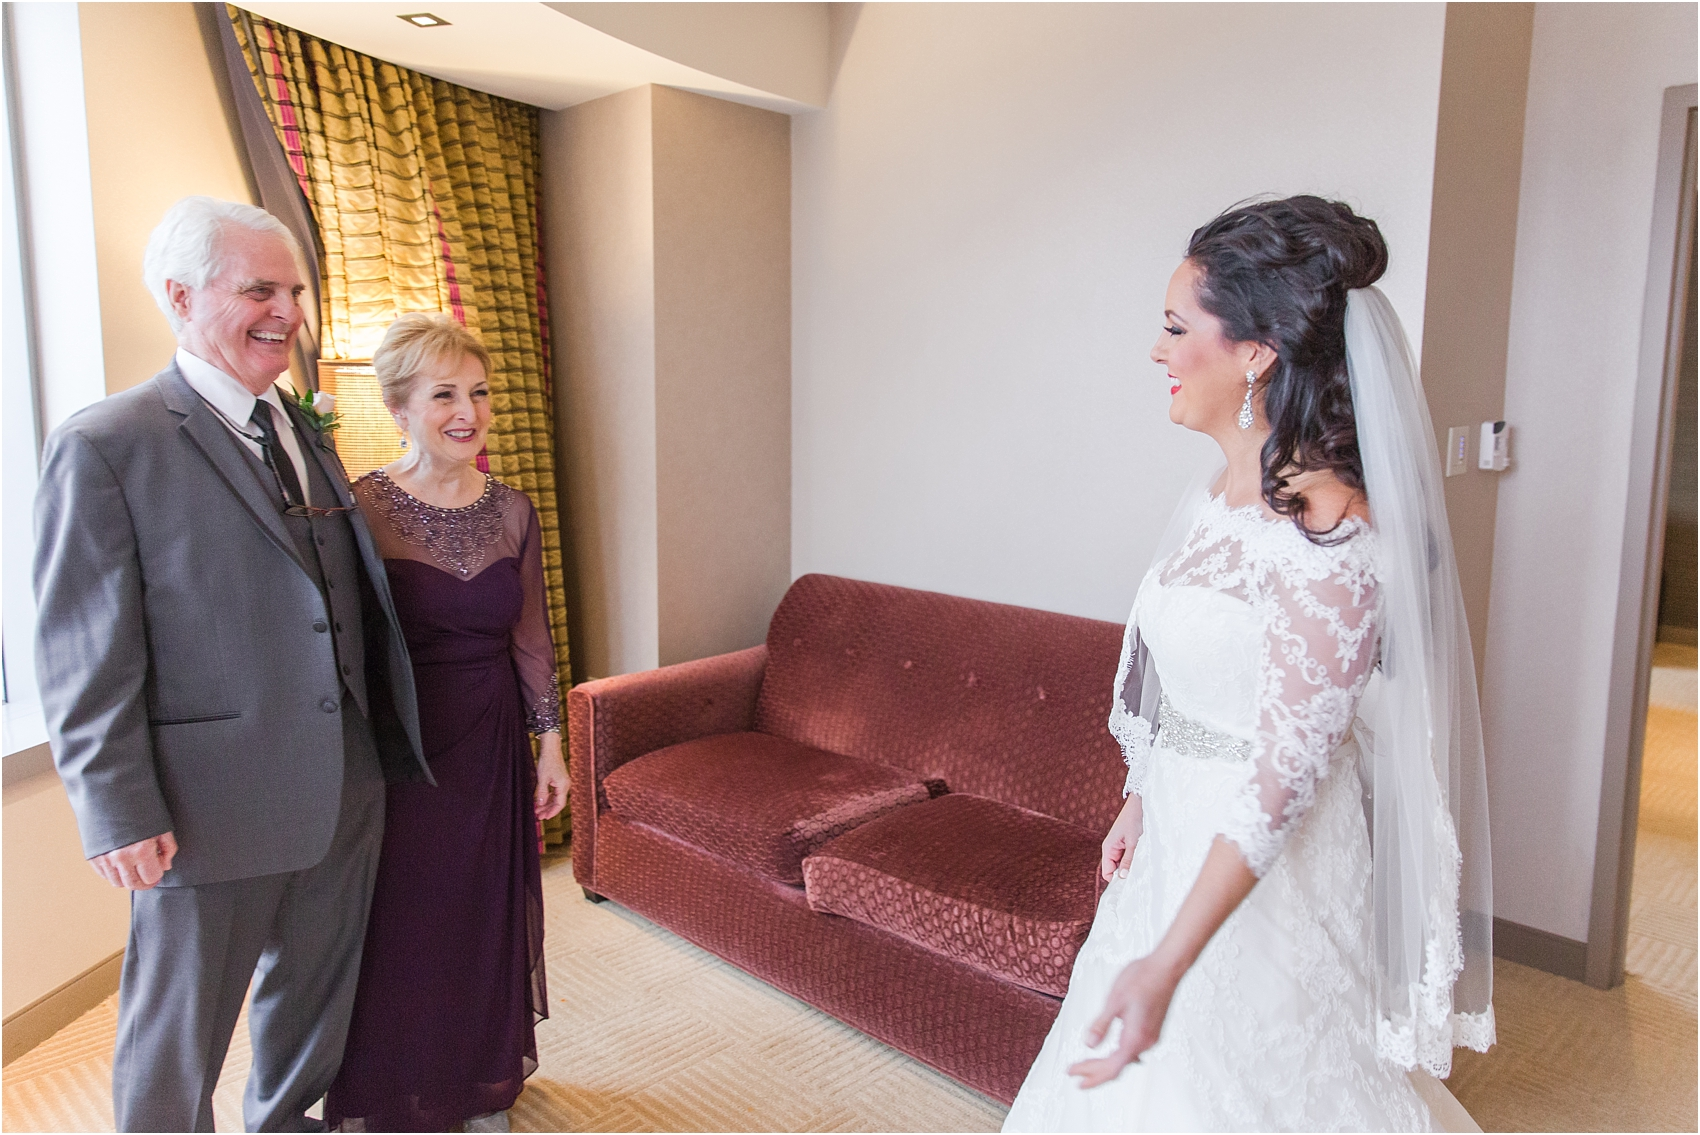 father-and-bride-share-emotional-first-look-on-wedding-day-photos-in-detroit-michigan-by-courtney-carolyn-photography_0034.jpg